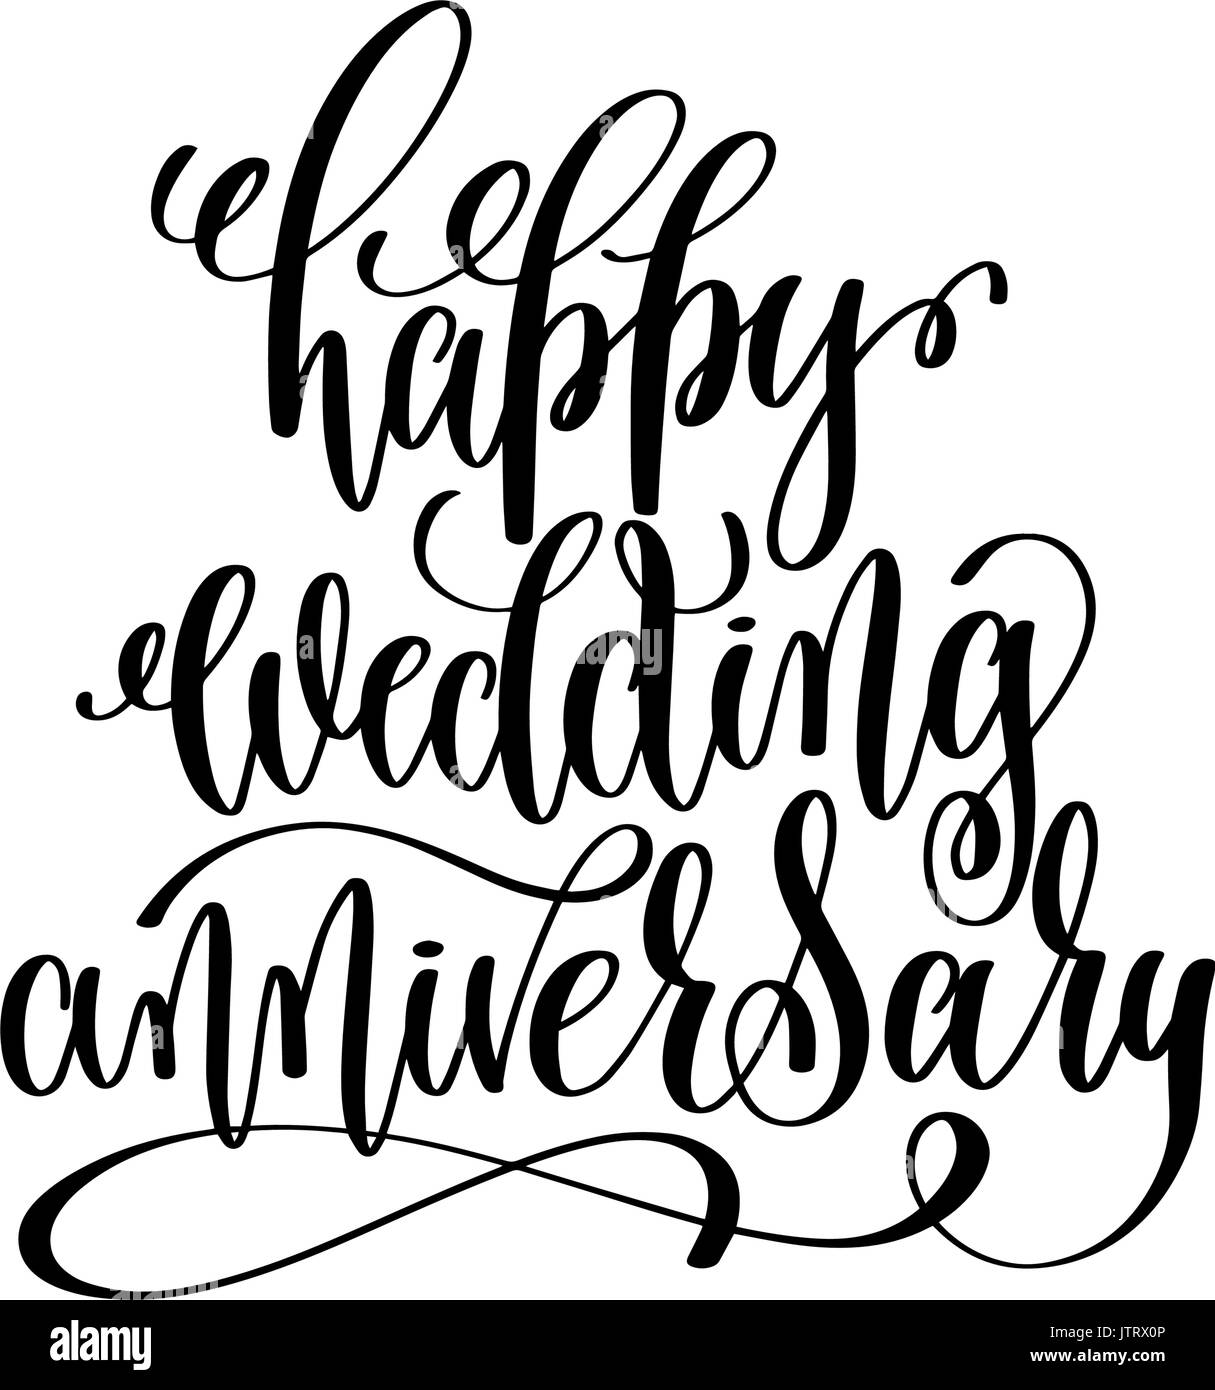 happy wedding anniversary black and white hand ink lettering